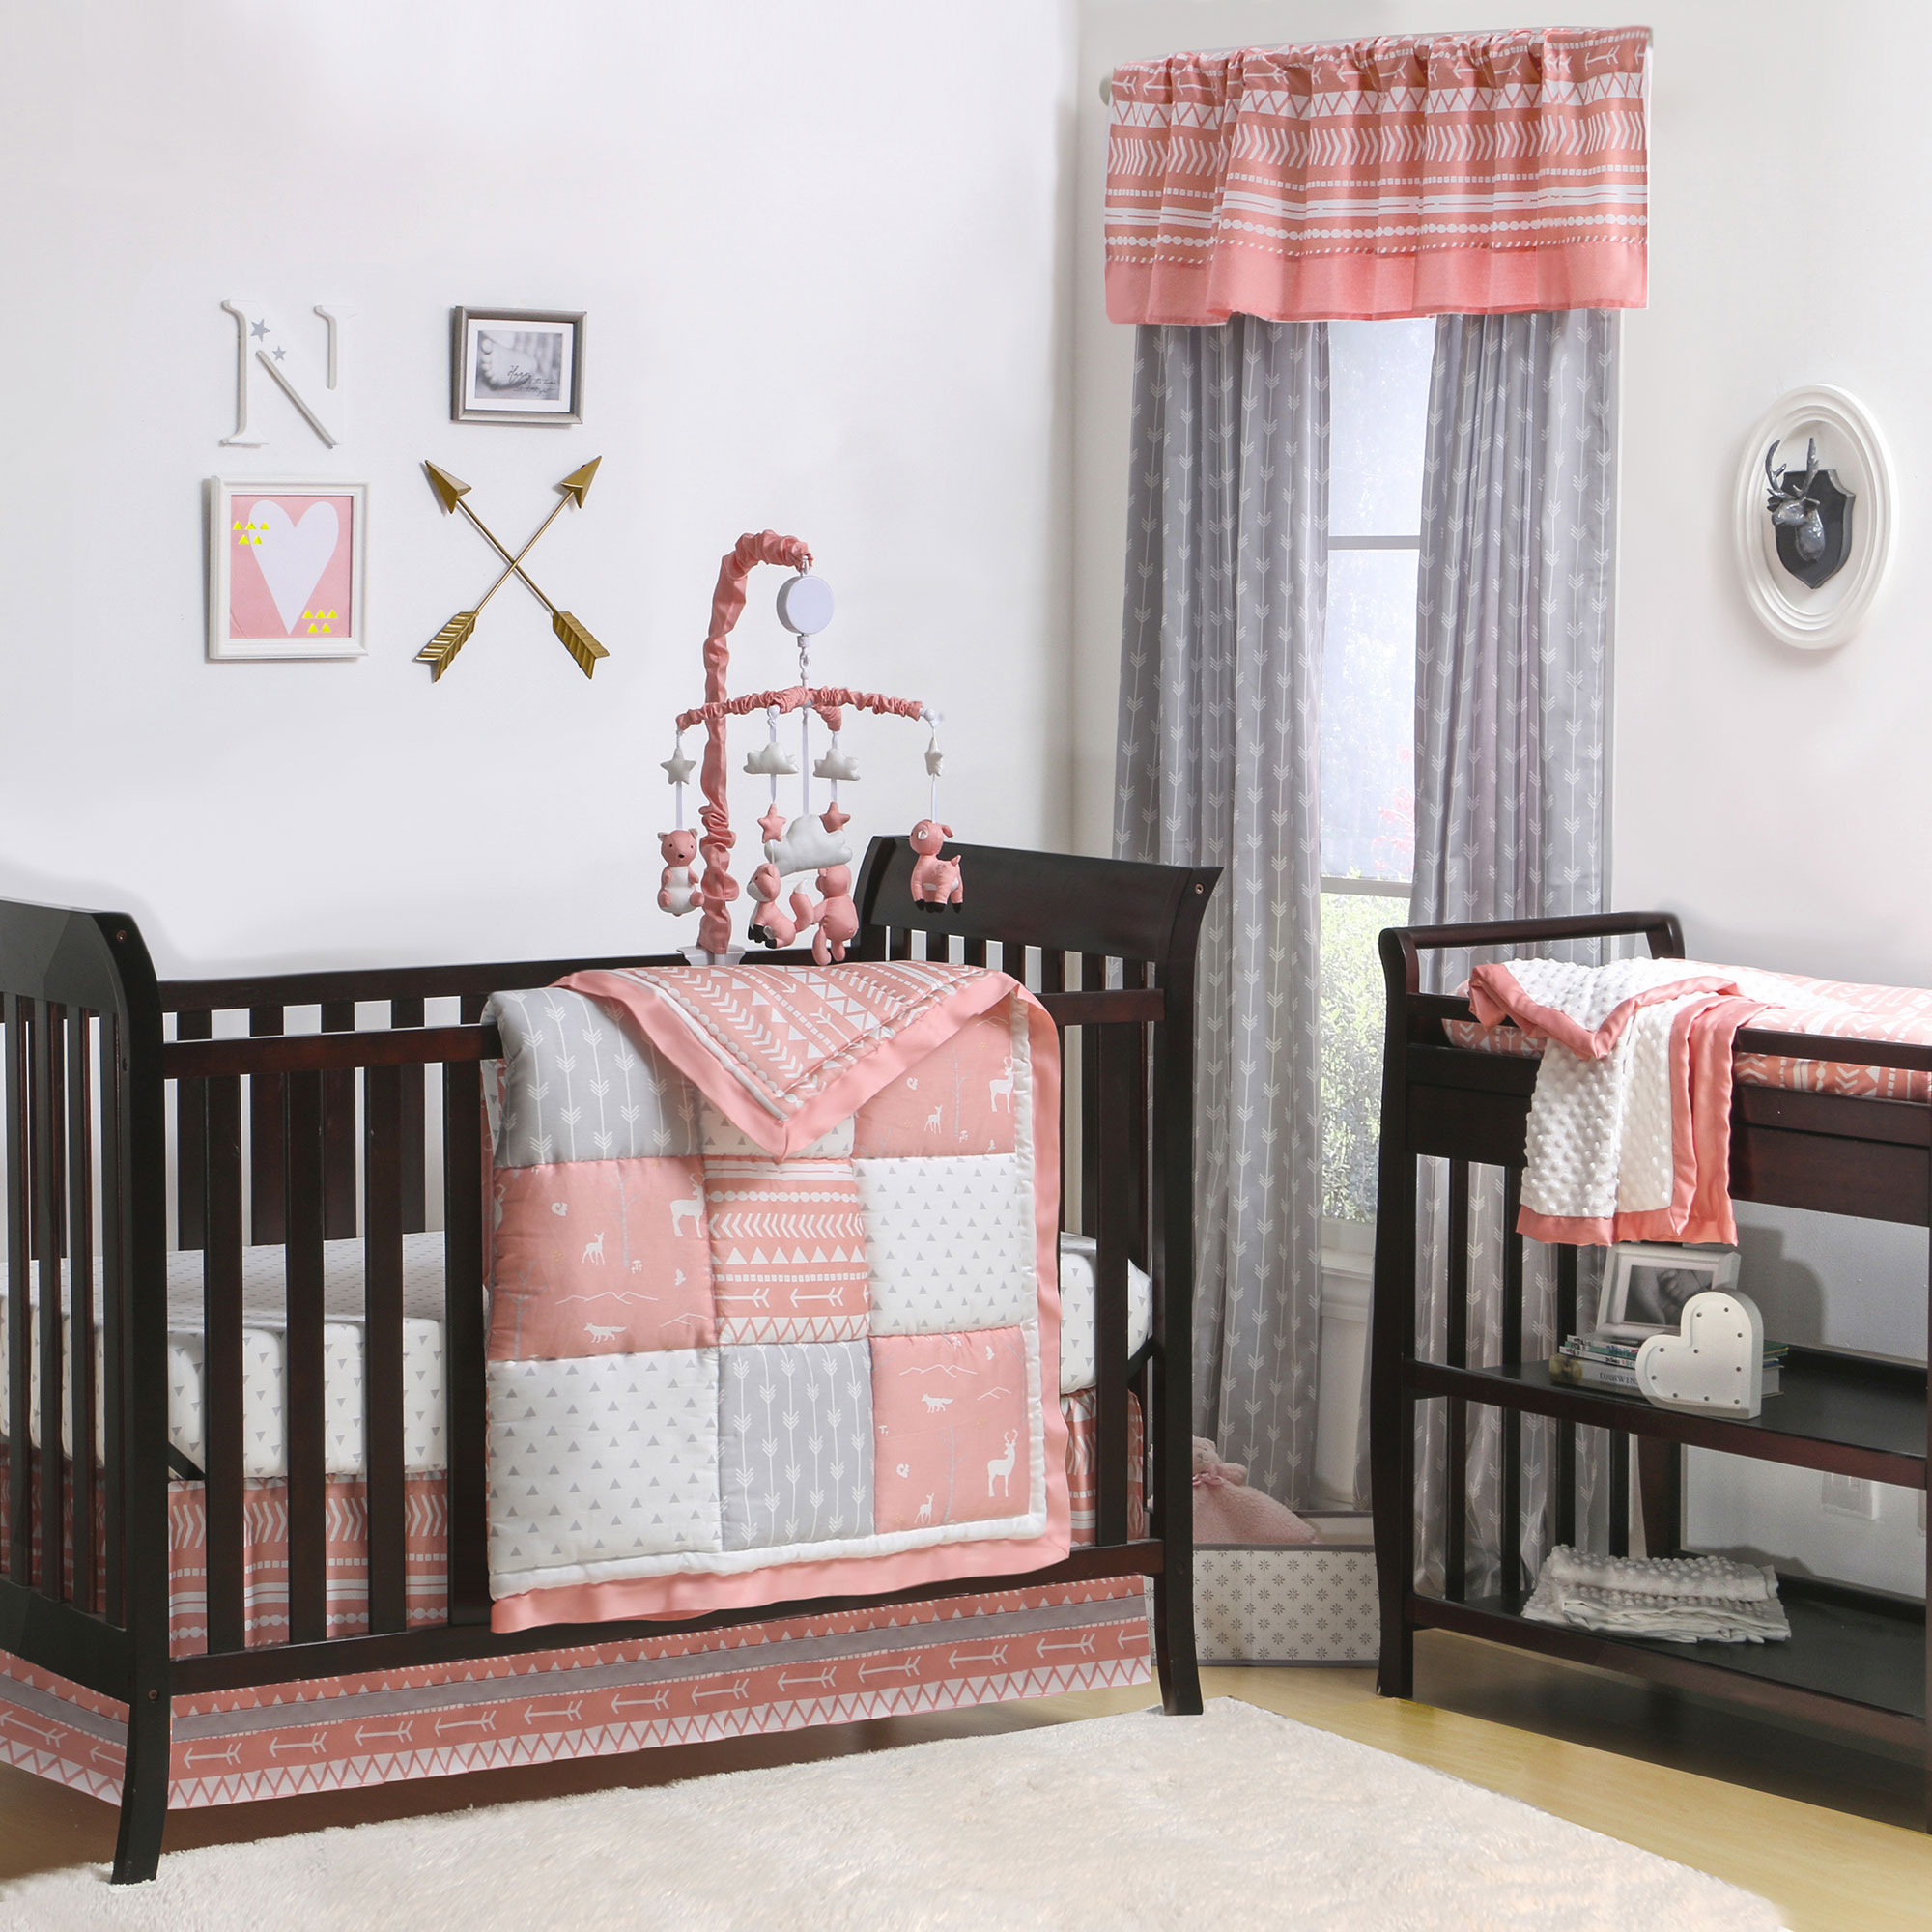 nats s caden collection lane large w cribs navy bumperless sheets bows crib decorative coral and baby bedding peach with collections floral nat